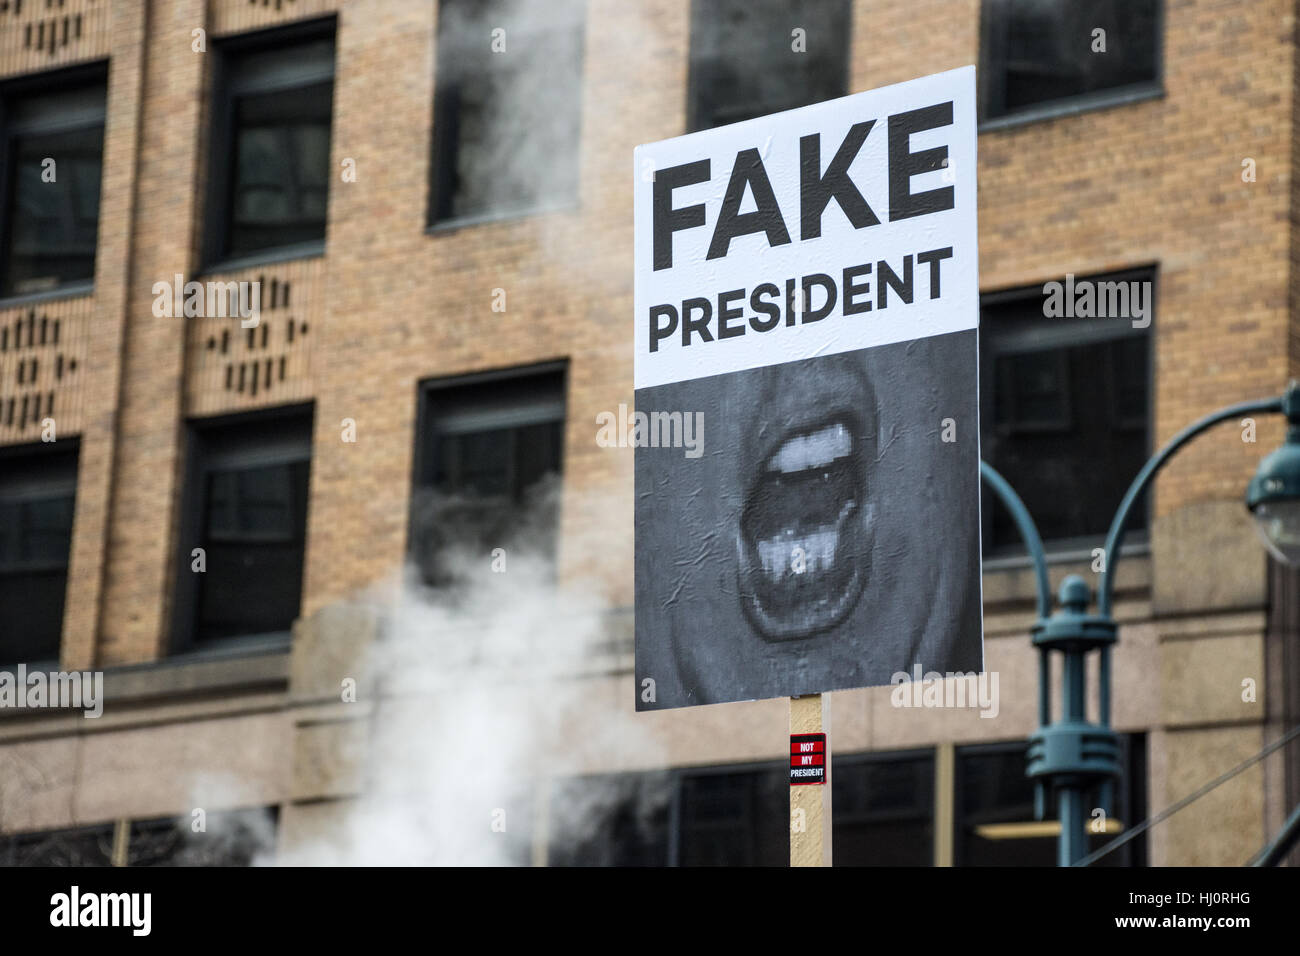 """New York, NY, USA. 21st January 2017. Women's March on NYC.  A protester carries a sign that reads """"fake president"""" Stock Photo"""